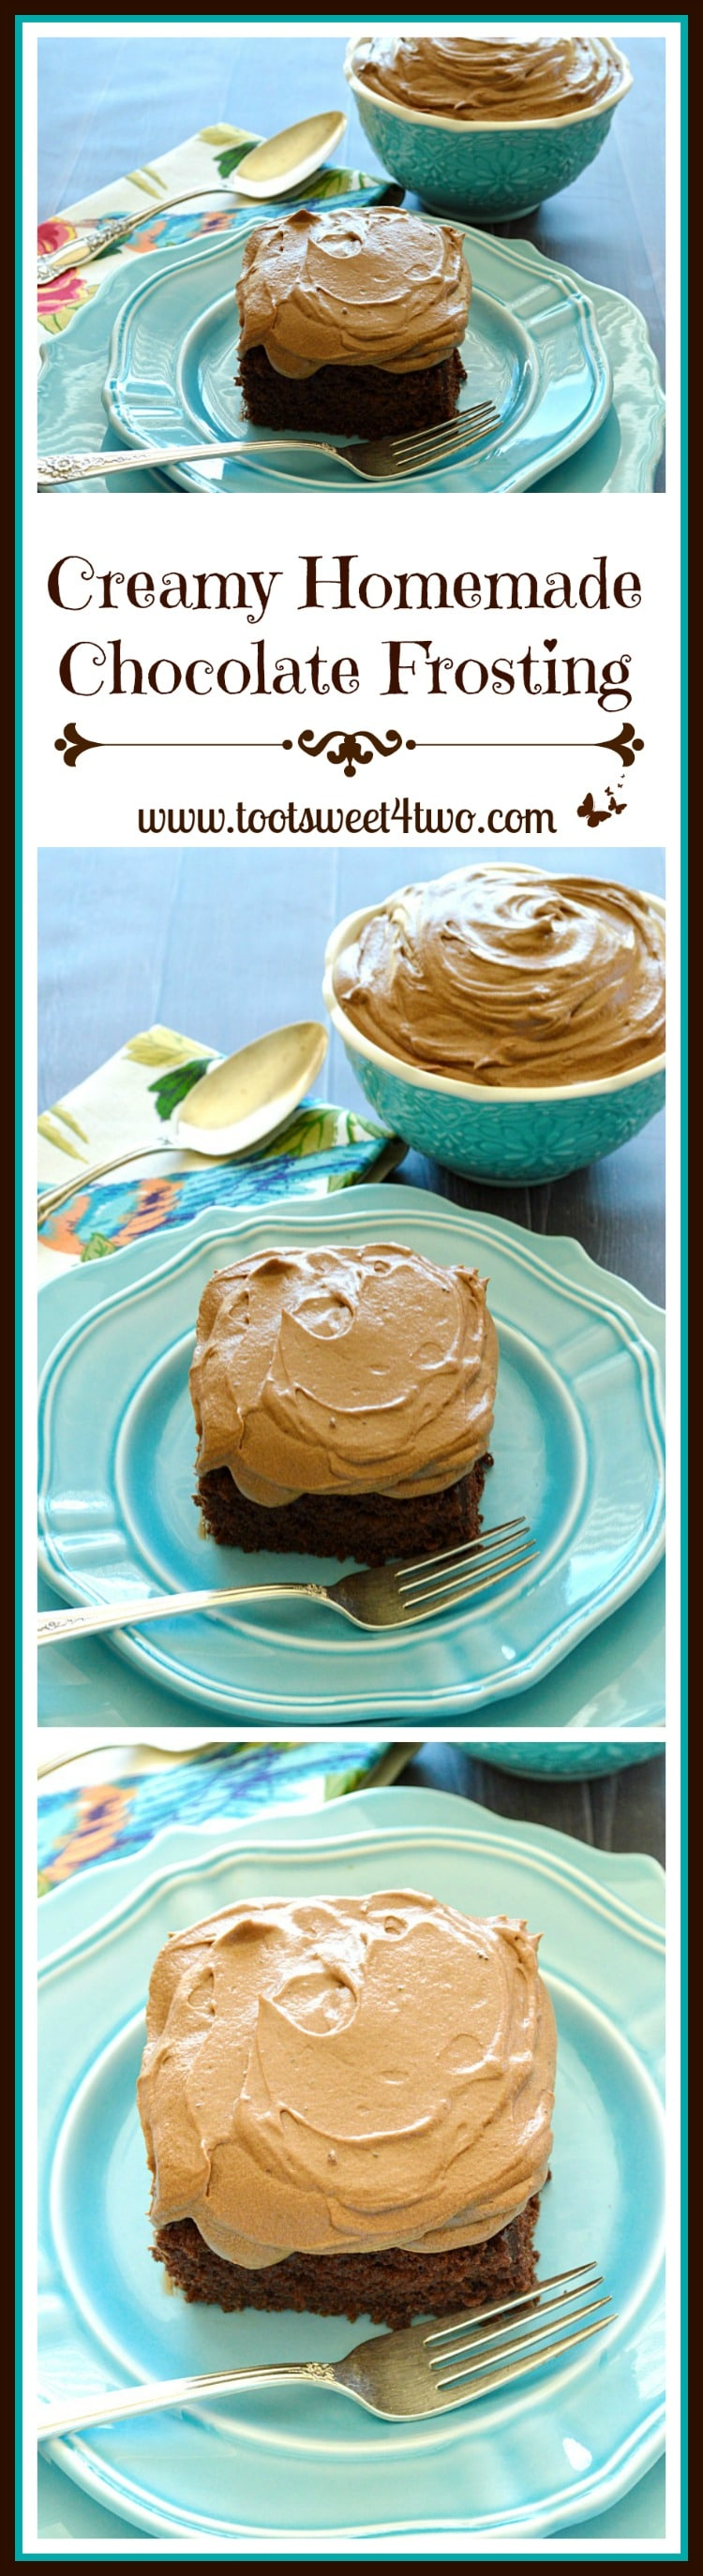 Creamy Homemade Chocolate Frosting Pinterest